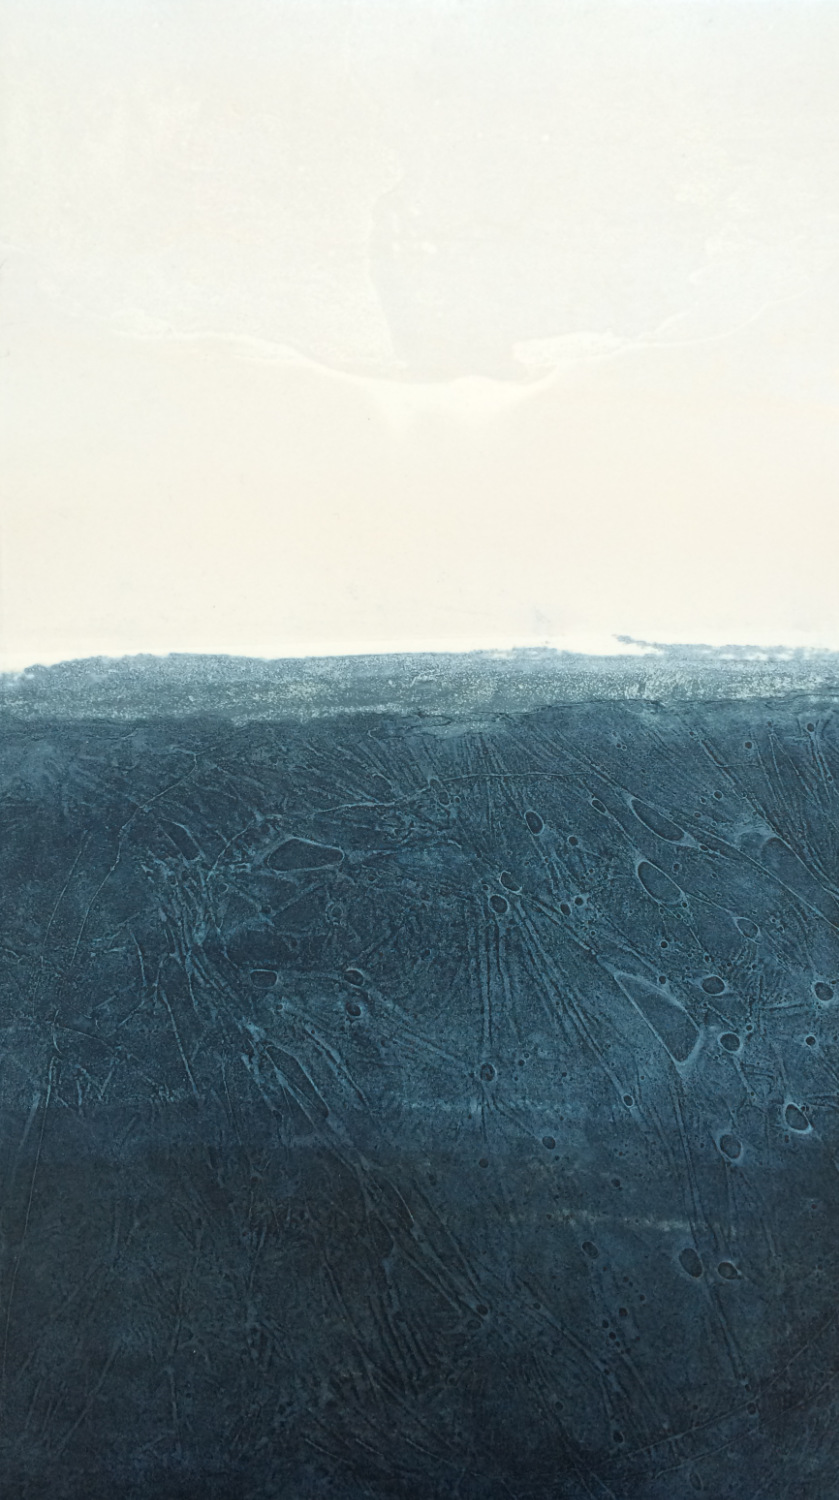 Elke Thönnes,   Shore ,  carborundum, plate and paper: 48 x 27cm. Unframed price: €180.00